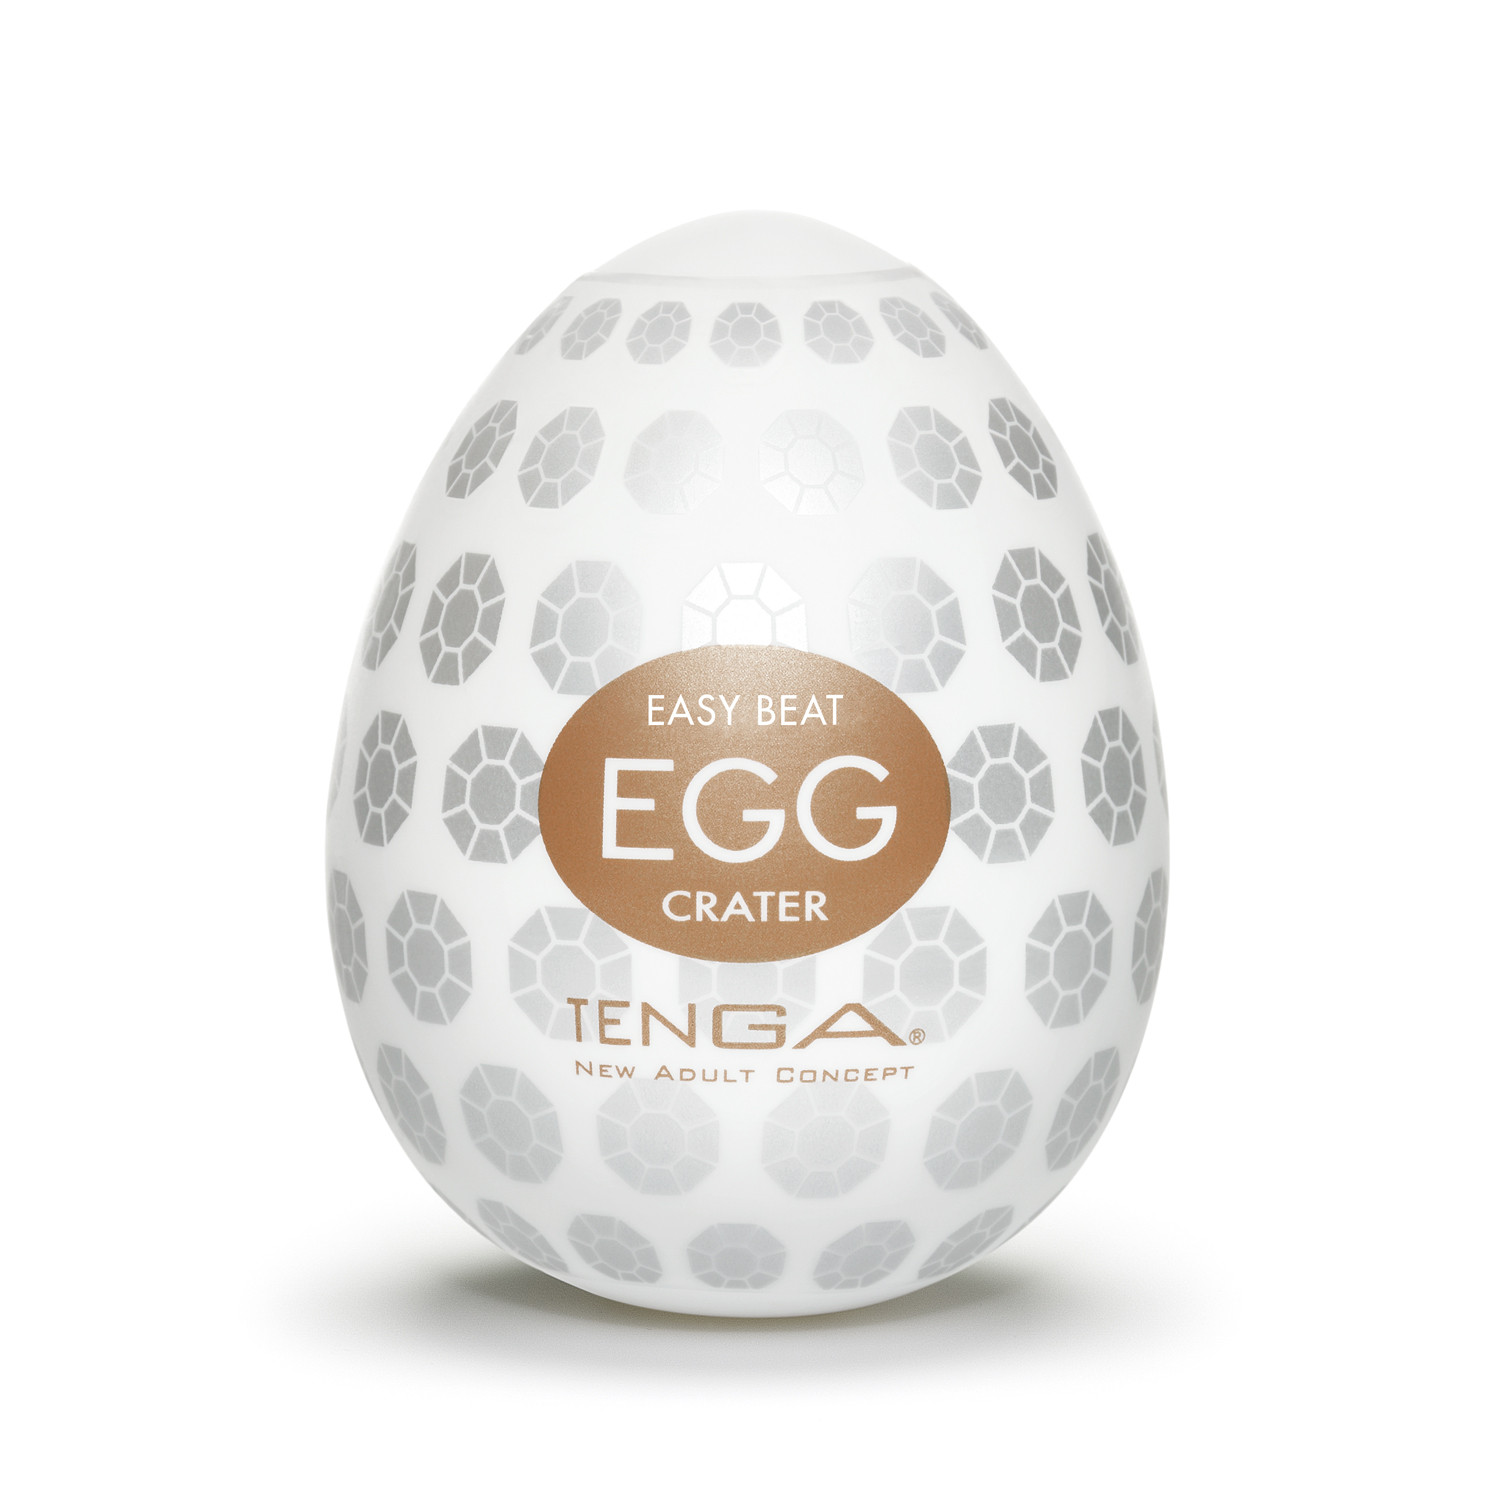 tenga egg 3 pack season 3 tenga touch of modern